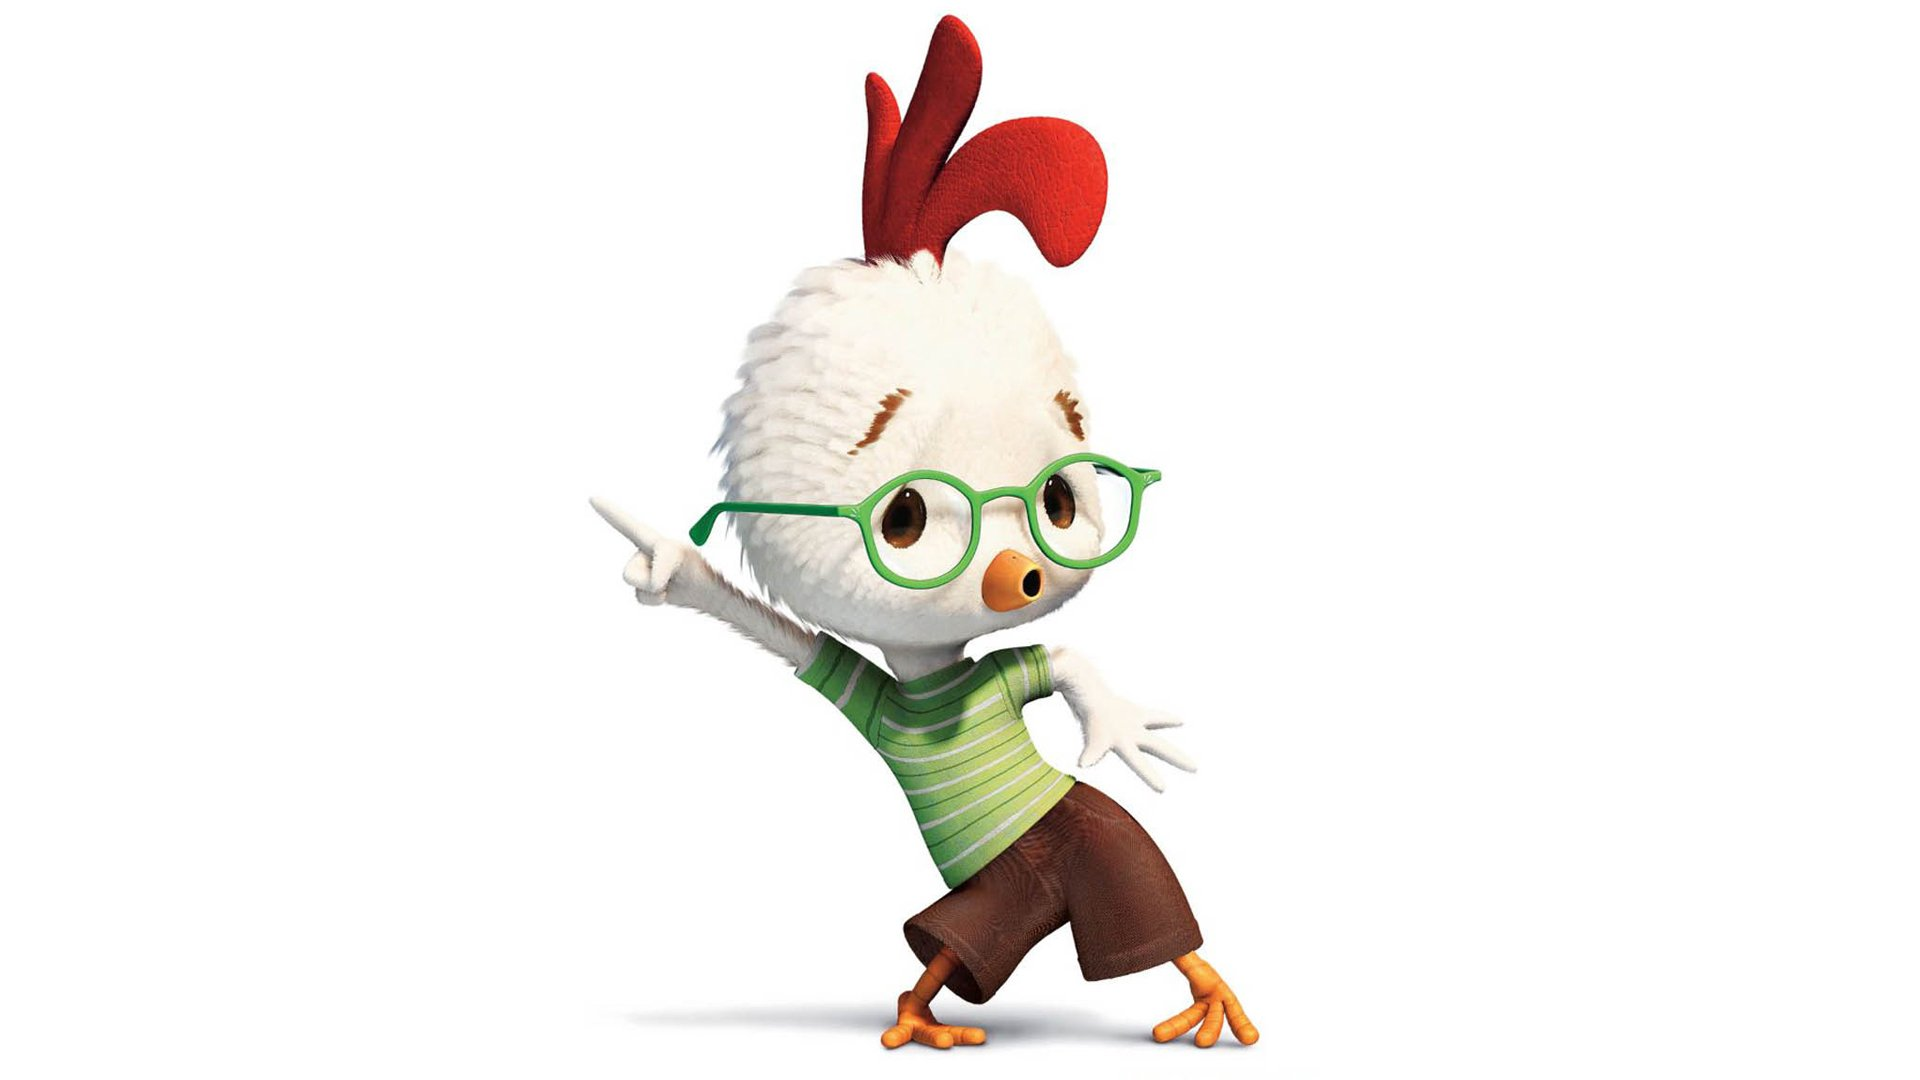 6 Chicken Little Fondos De Pantalla Hd Fondos De